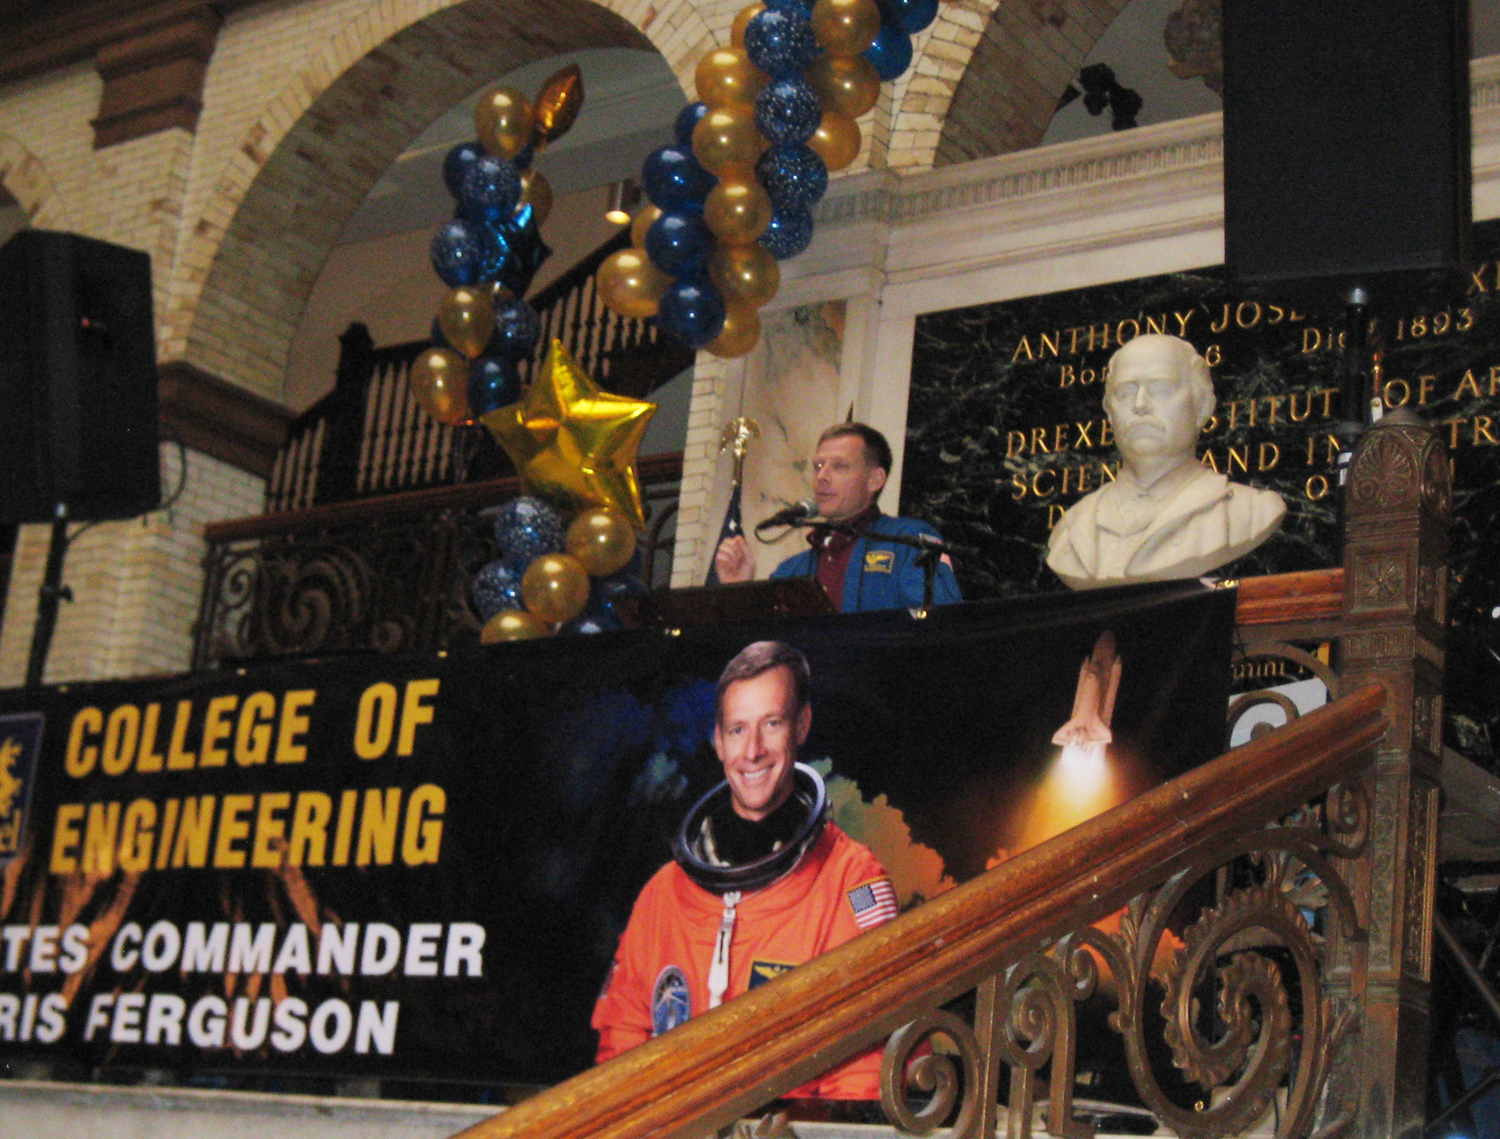 Astronaut Christopher Ferguson Named Drexel's 2009 Engineer of the Year